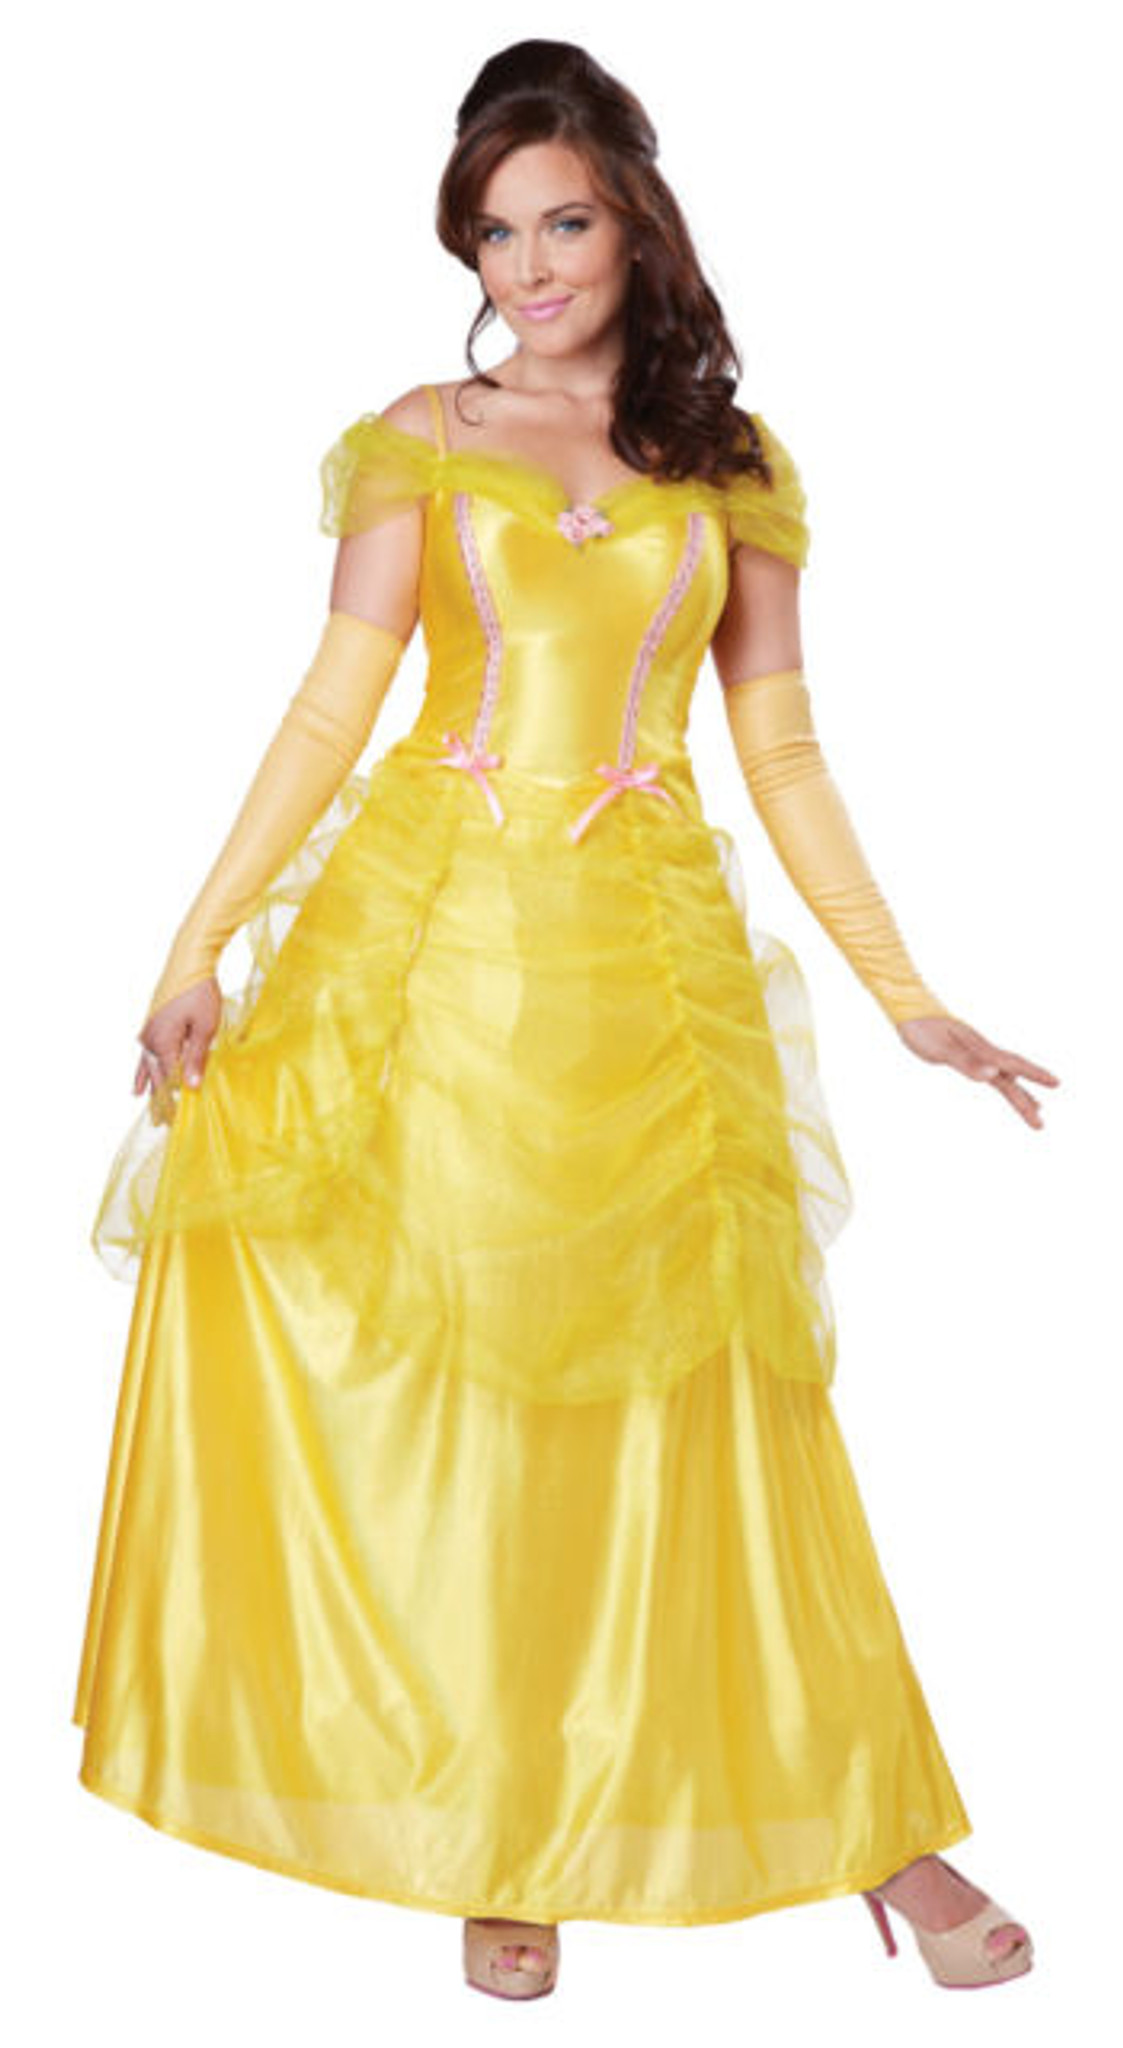 Belle Classic Beauty Plus Size Princess Yellow Dress